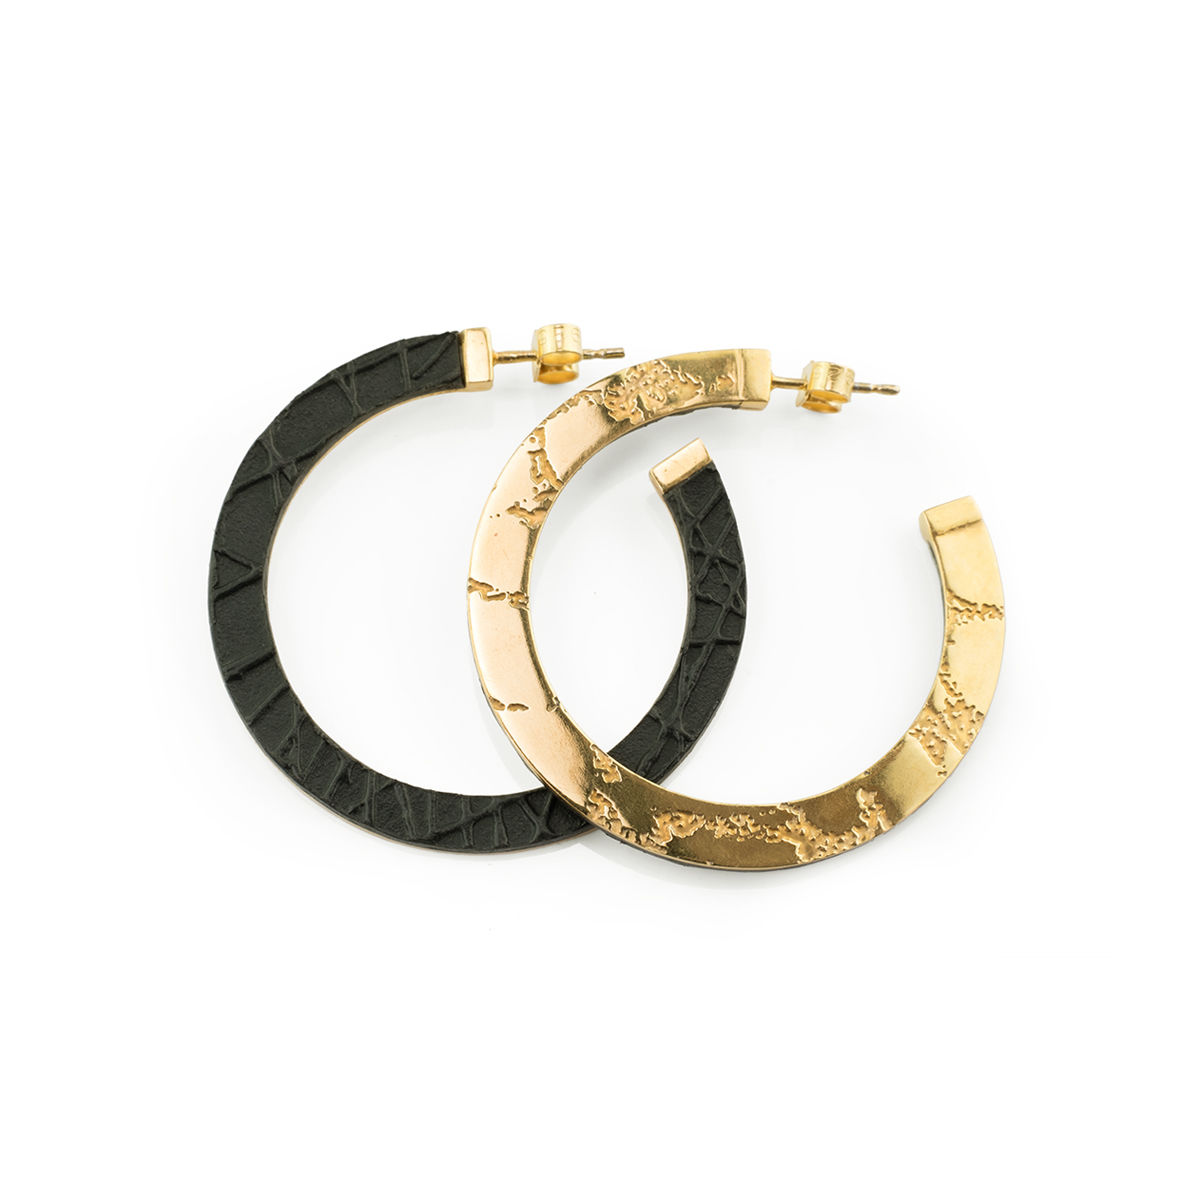 SKIN textured hoop earrings - gold and black - product images  of